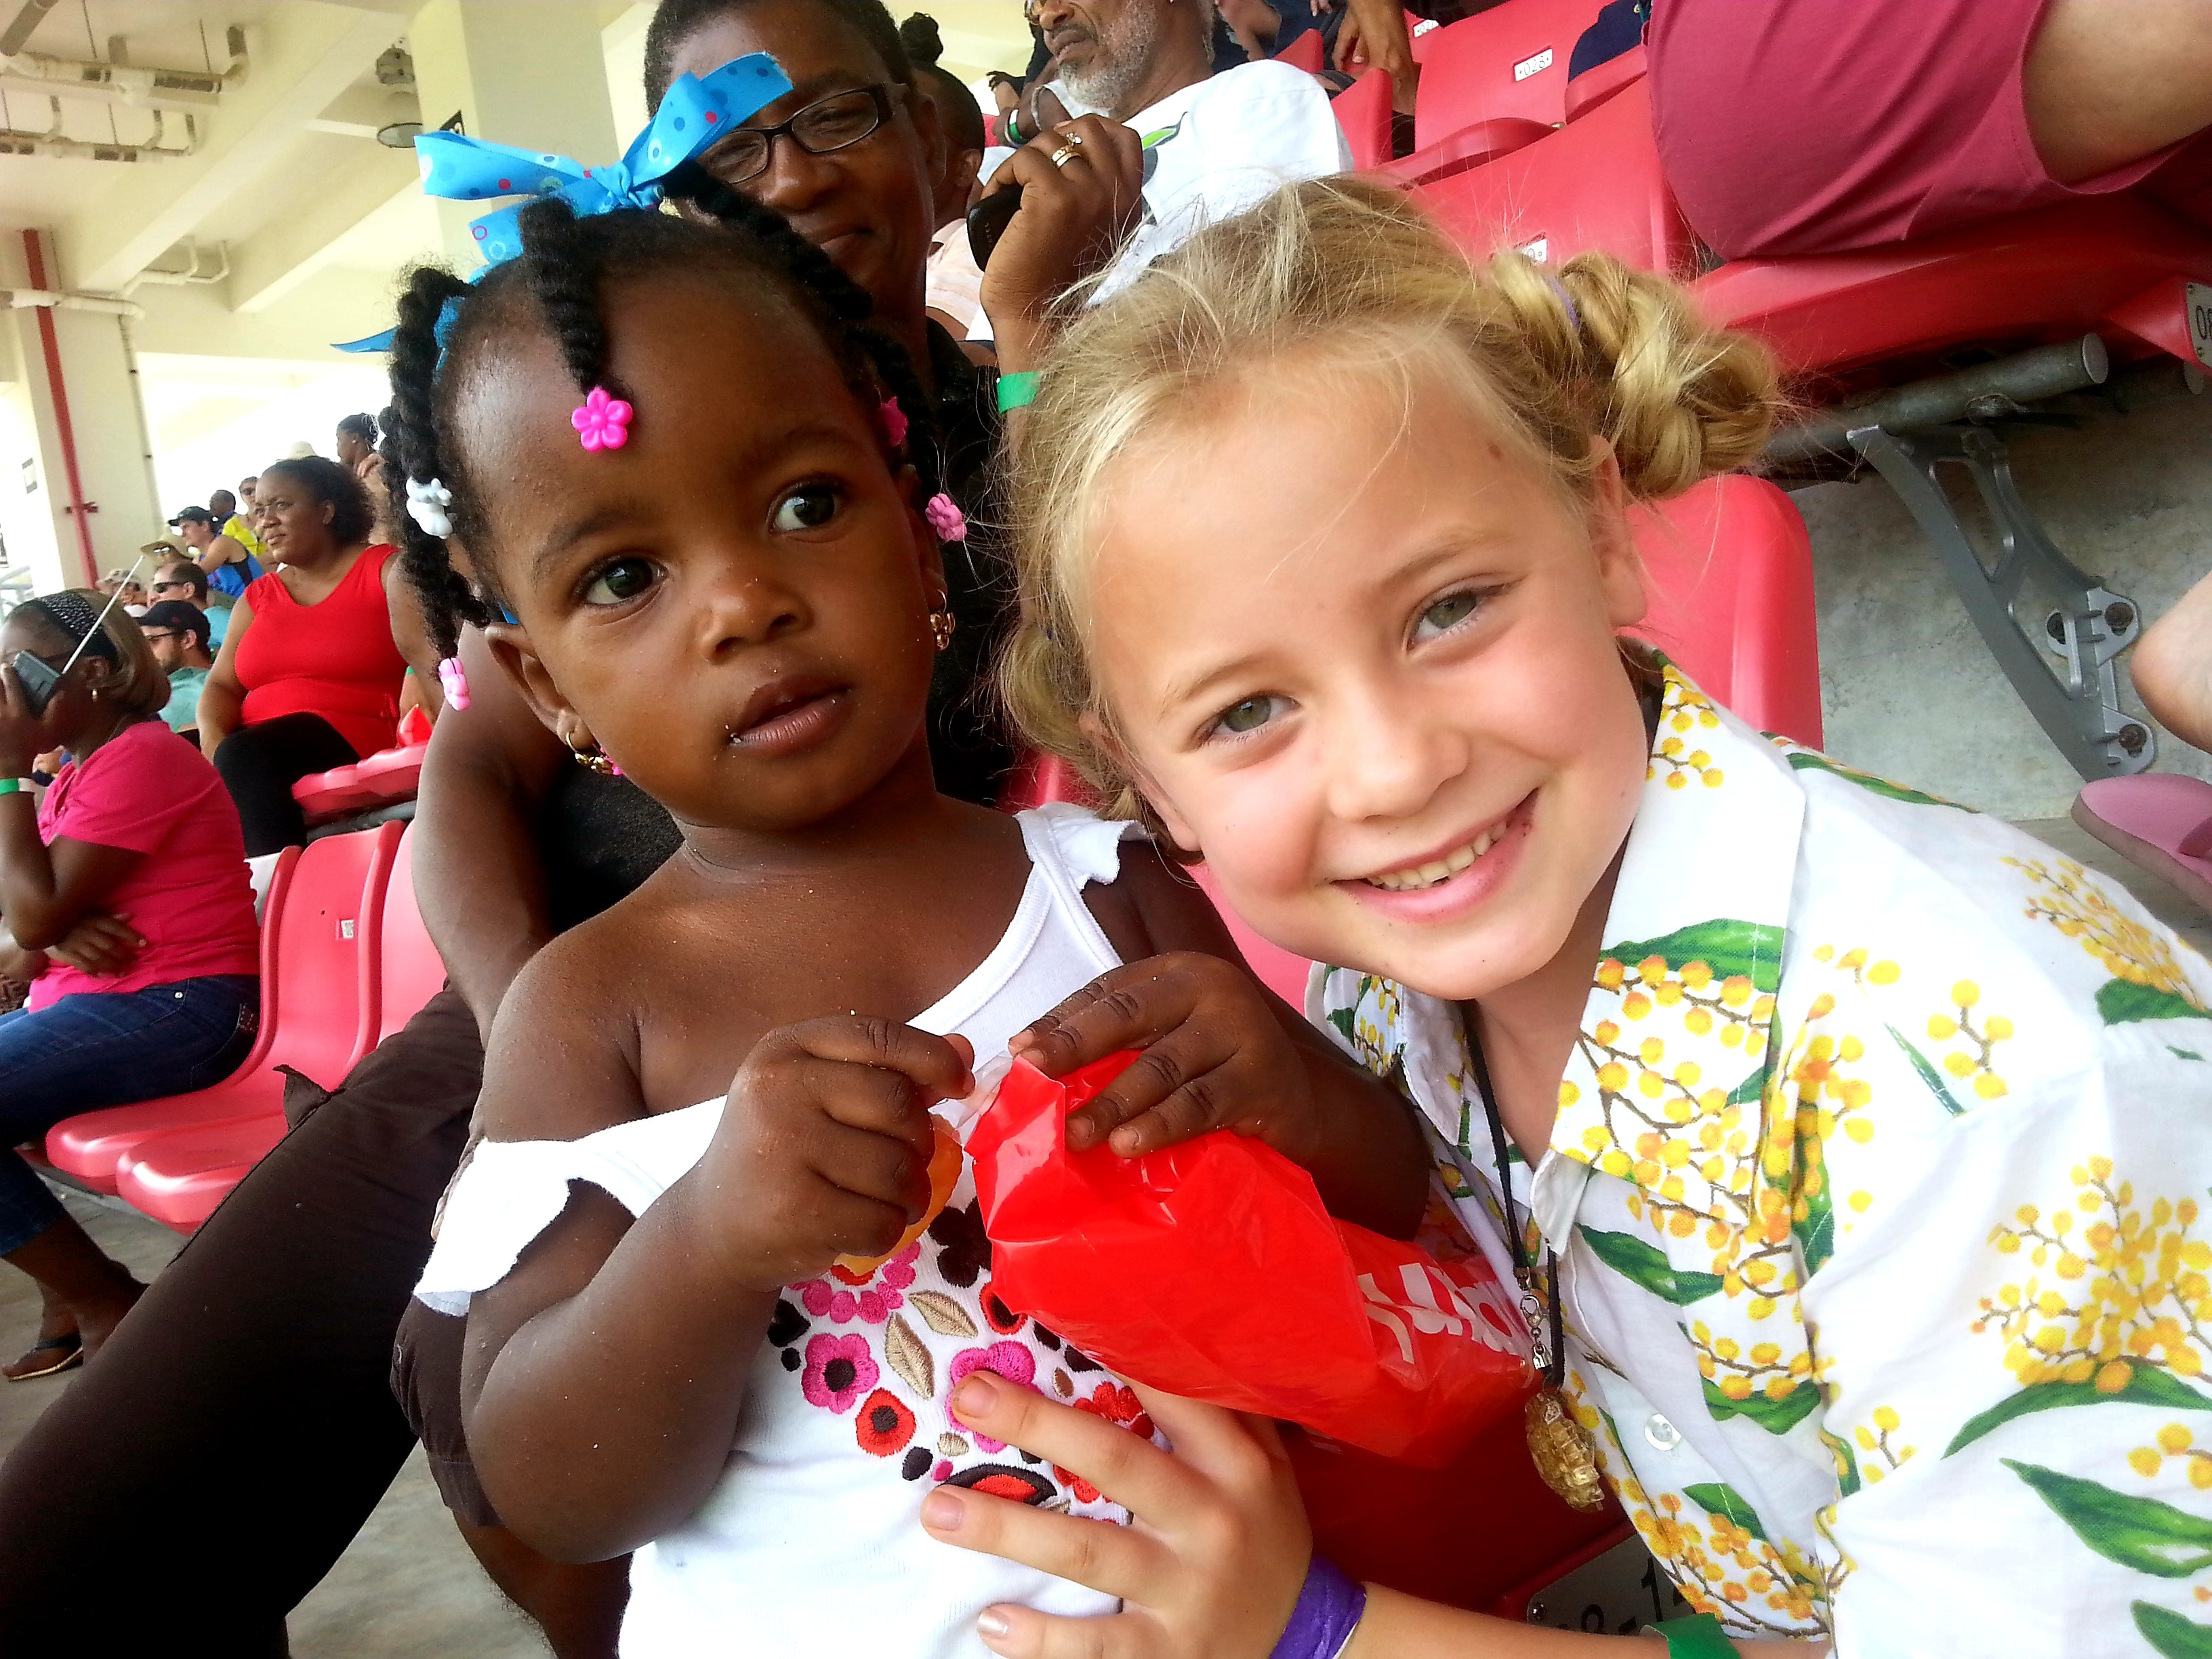 Australian Cricket Tours - Our Youngest Ever Guest Marli Making Friends With Mya At The Cricket In Dominica